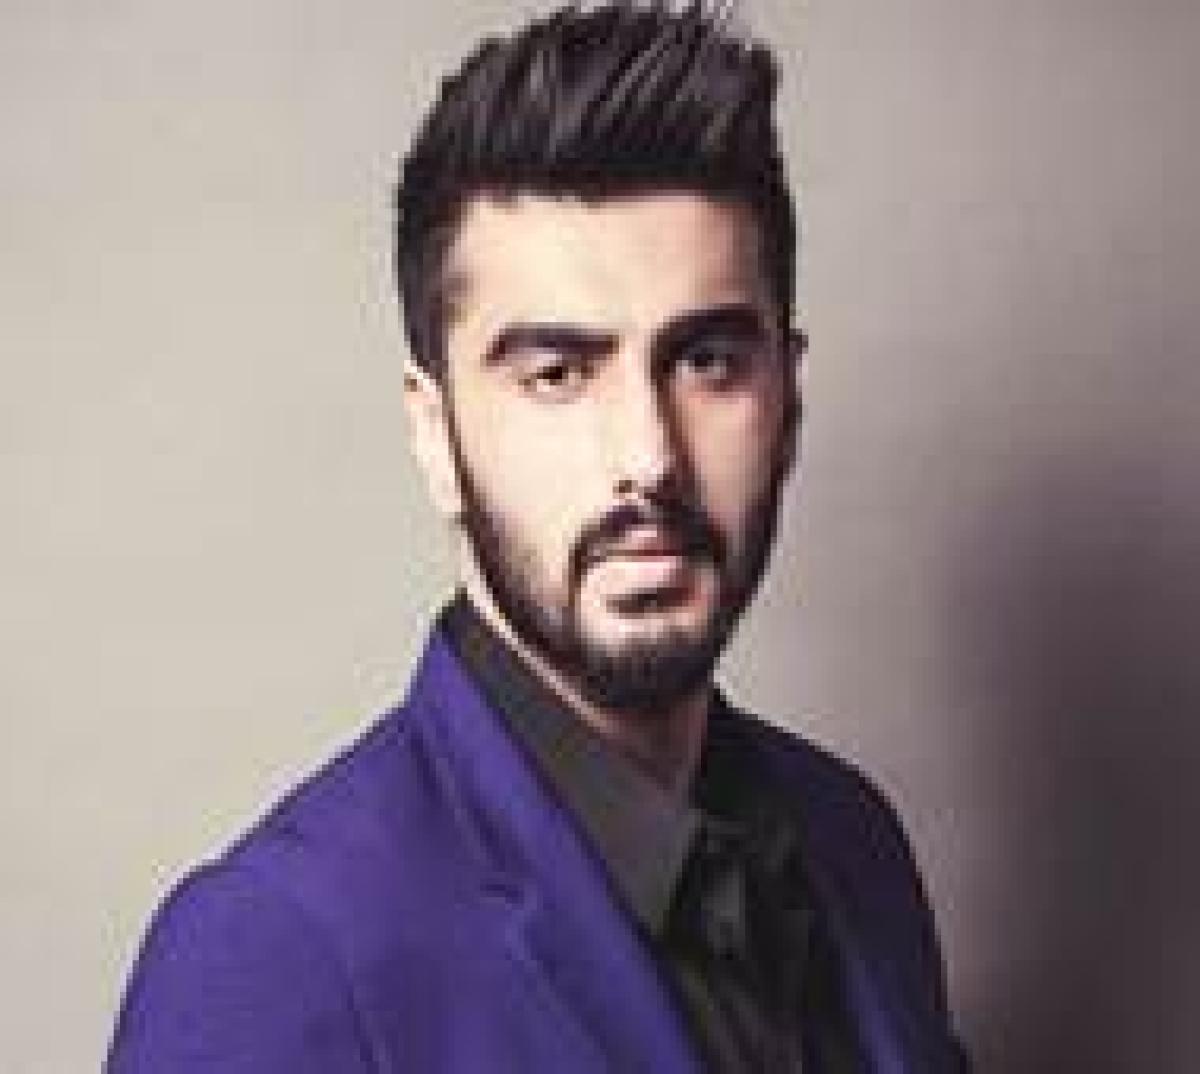 Arjun Kapoor participates in safety awareness campaign with Delhi police